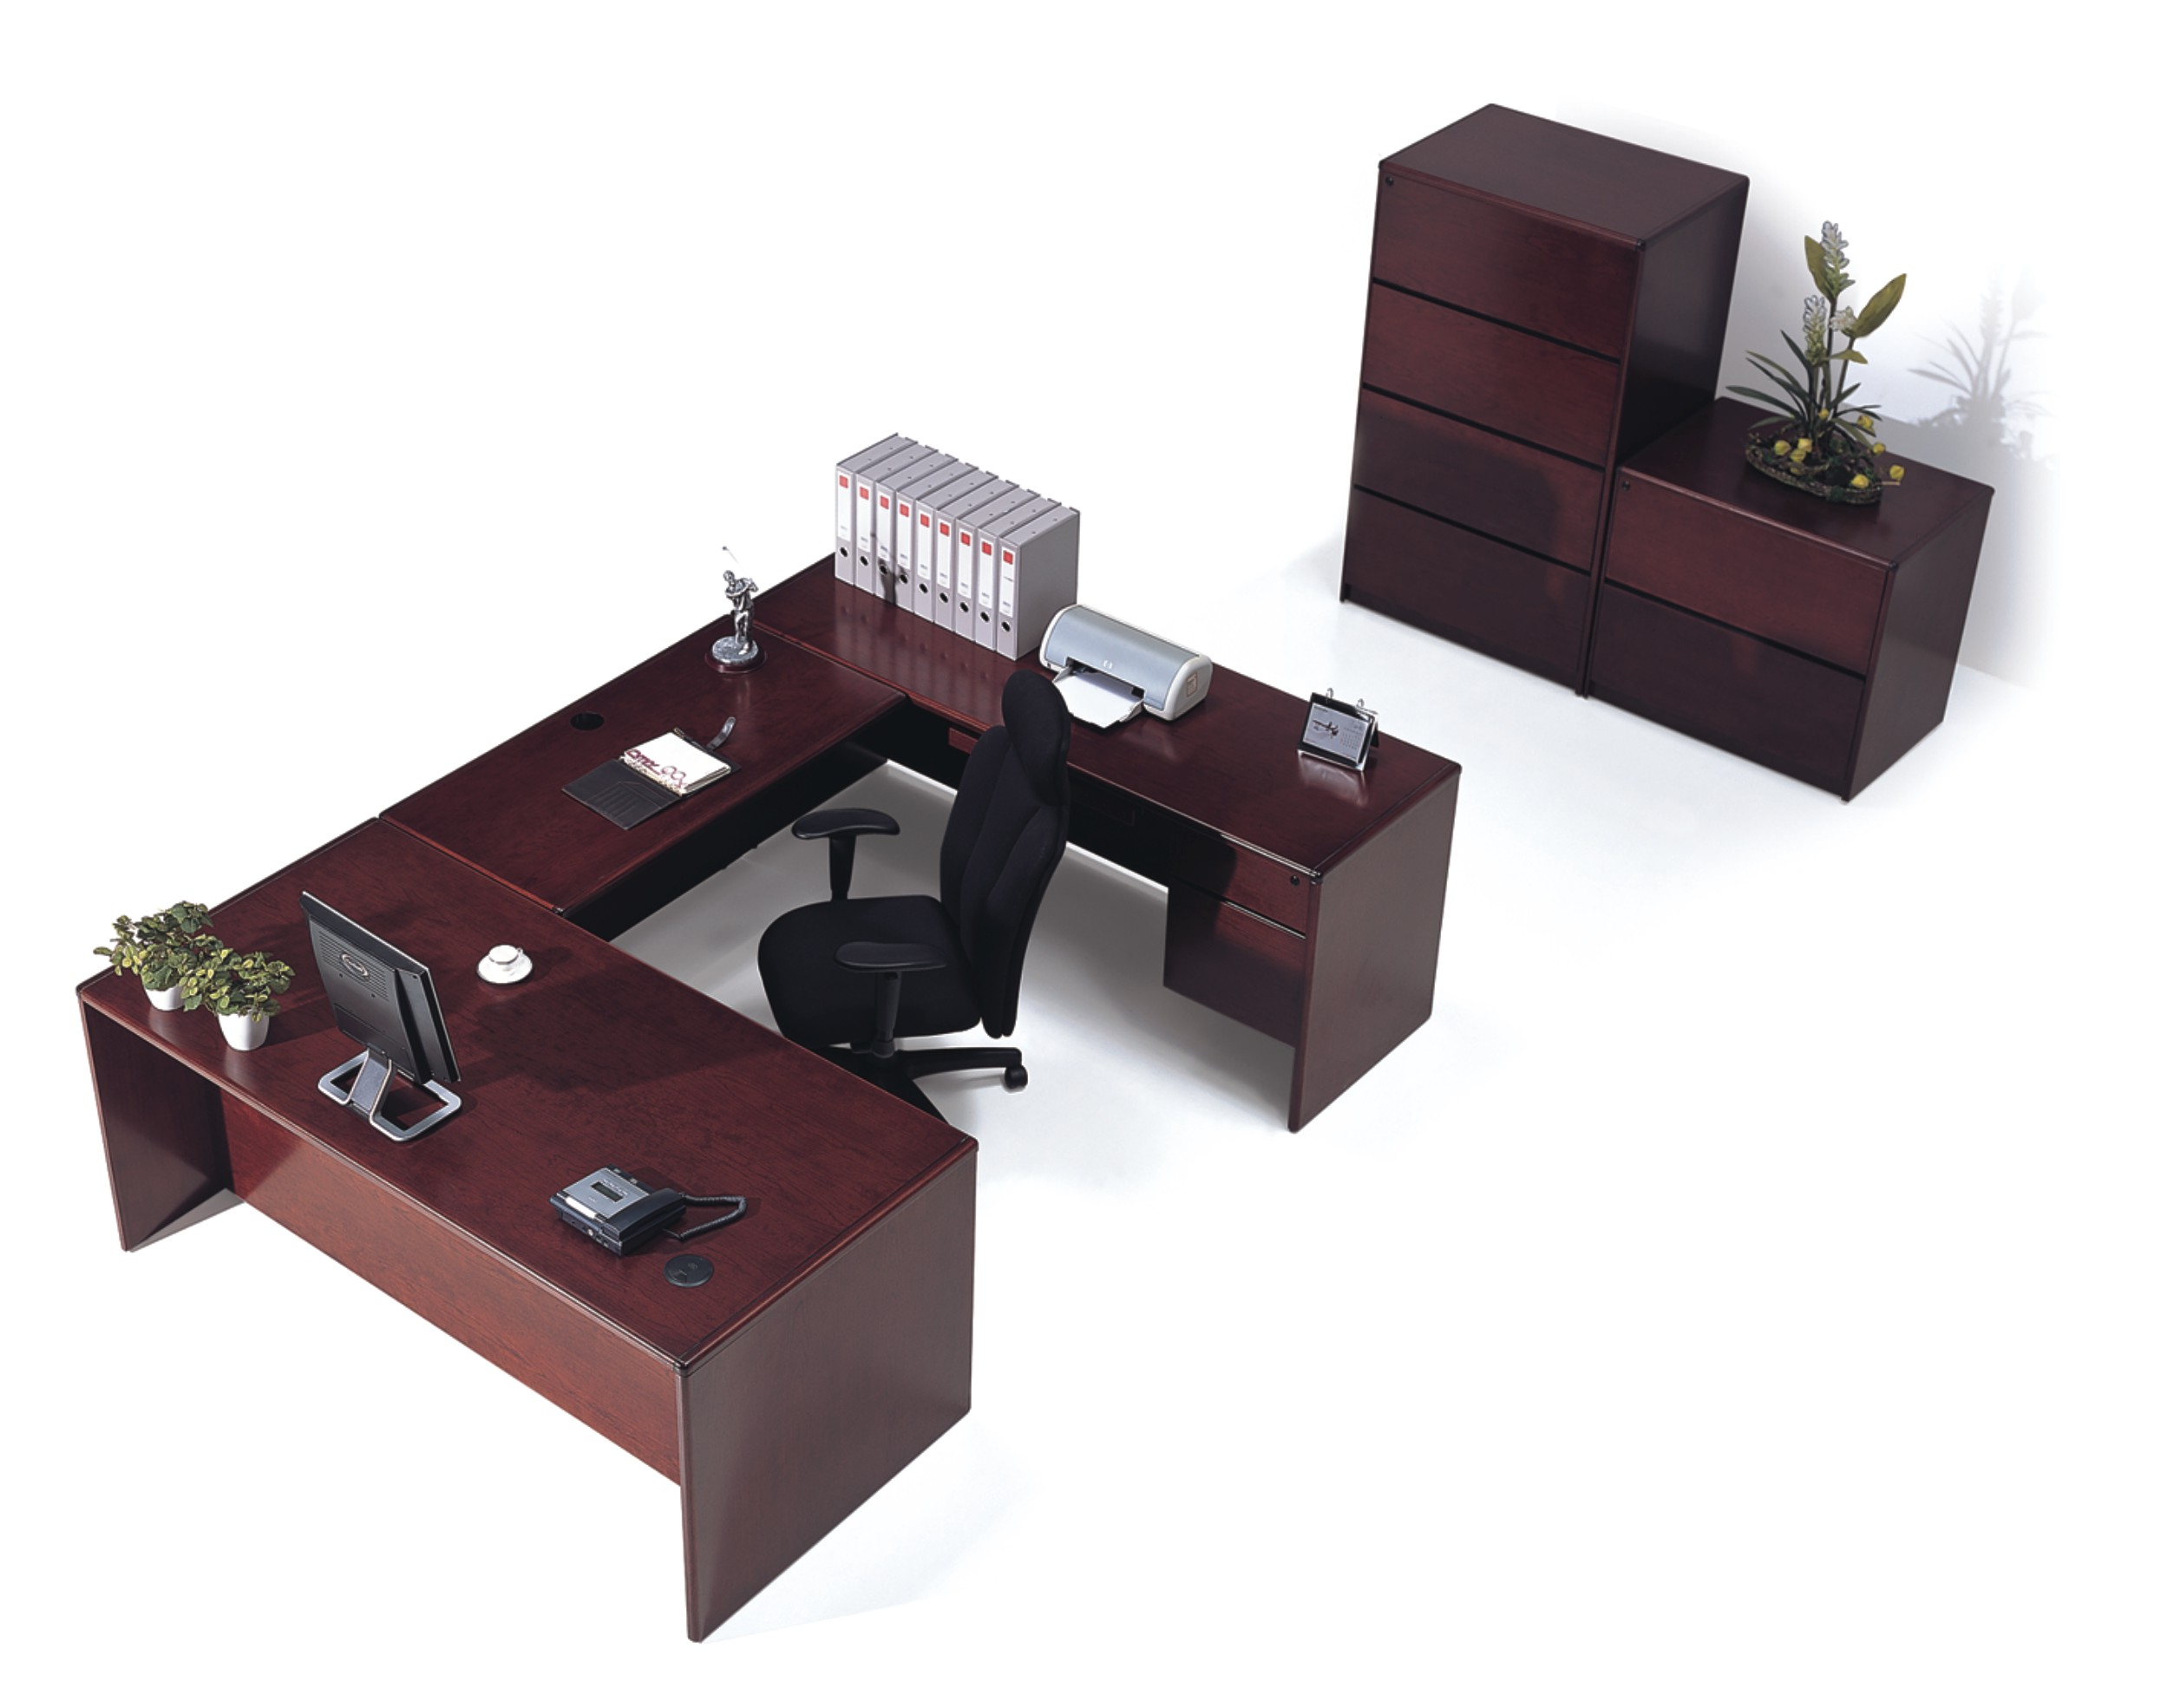 furniture artopex quality used desk office u services desks shape budget dynamic friendly